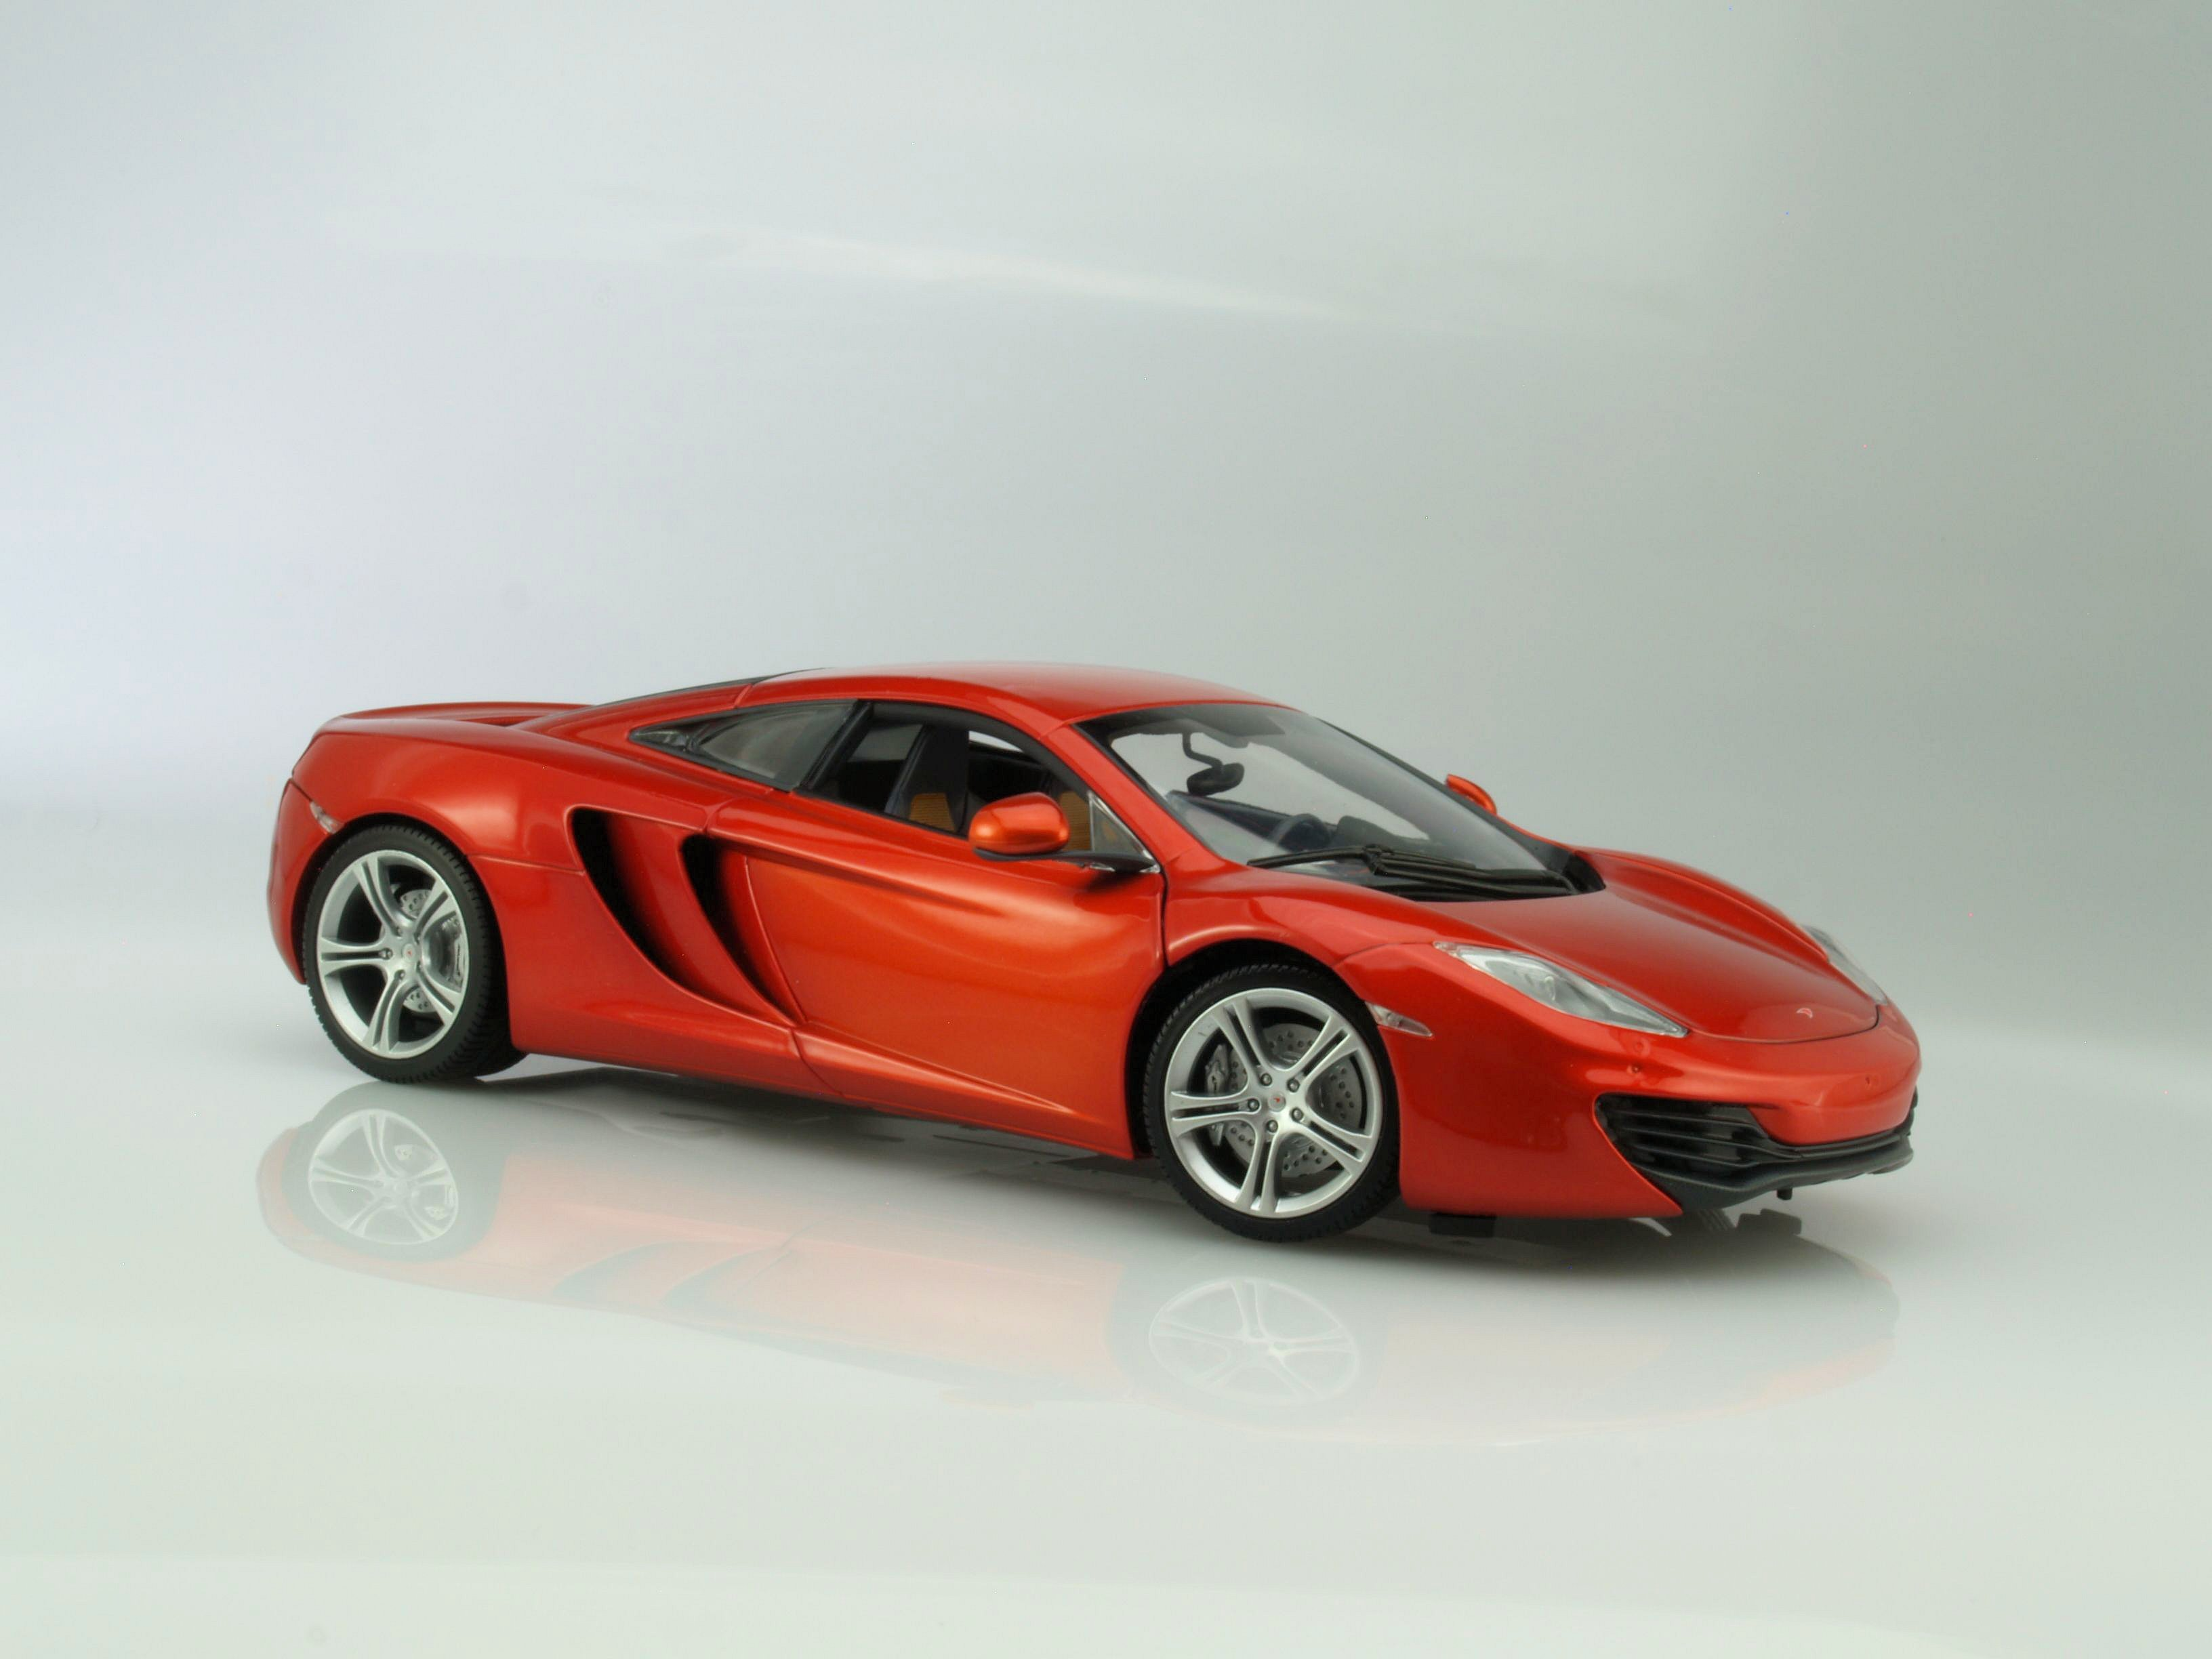 Minichamps McLaren MP4-12C